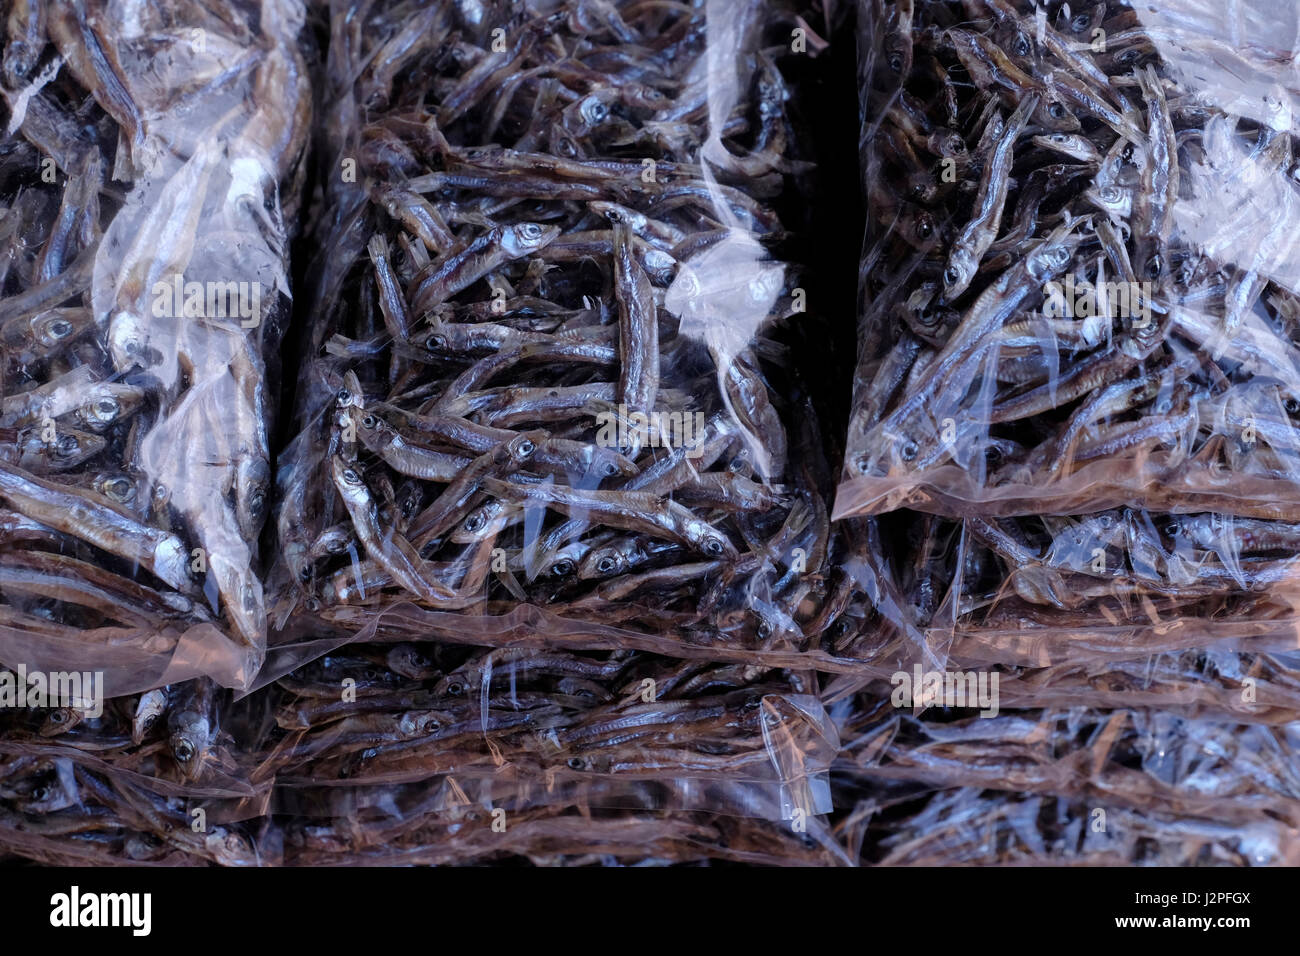 Dried fish in plastic bags for sale in the market in